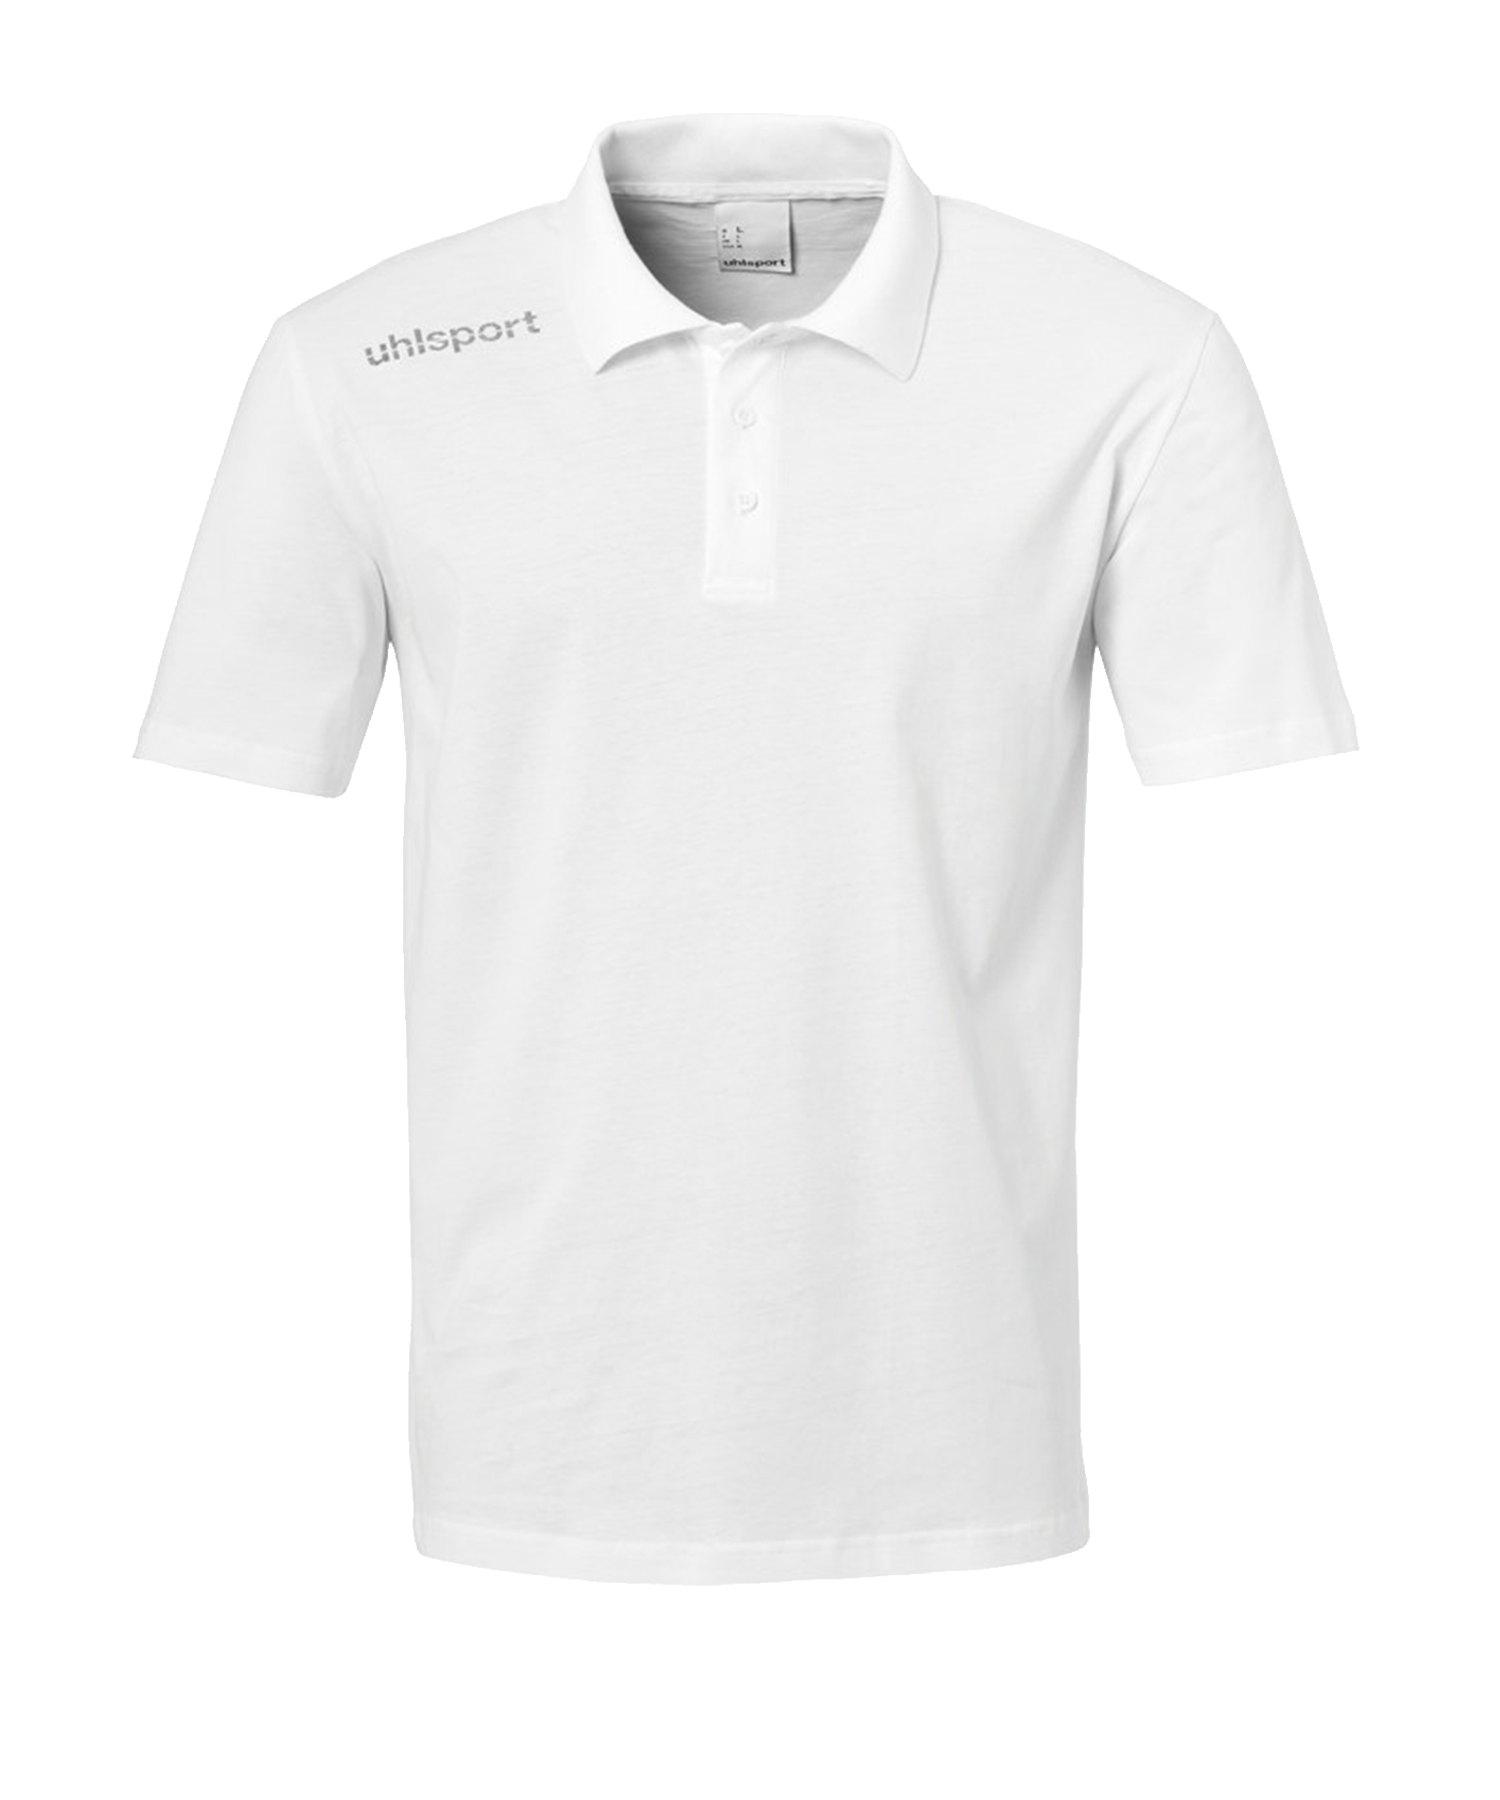 Uhlsport Essential Poloshirt Kids Weiss F02 - Weiss